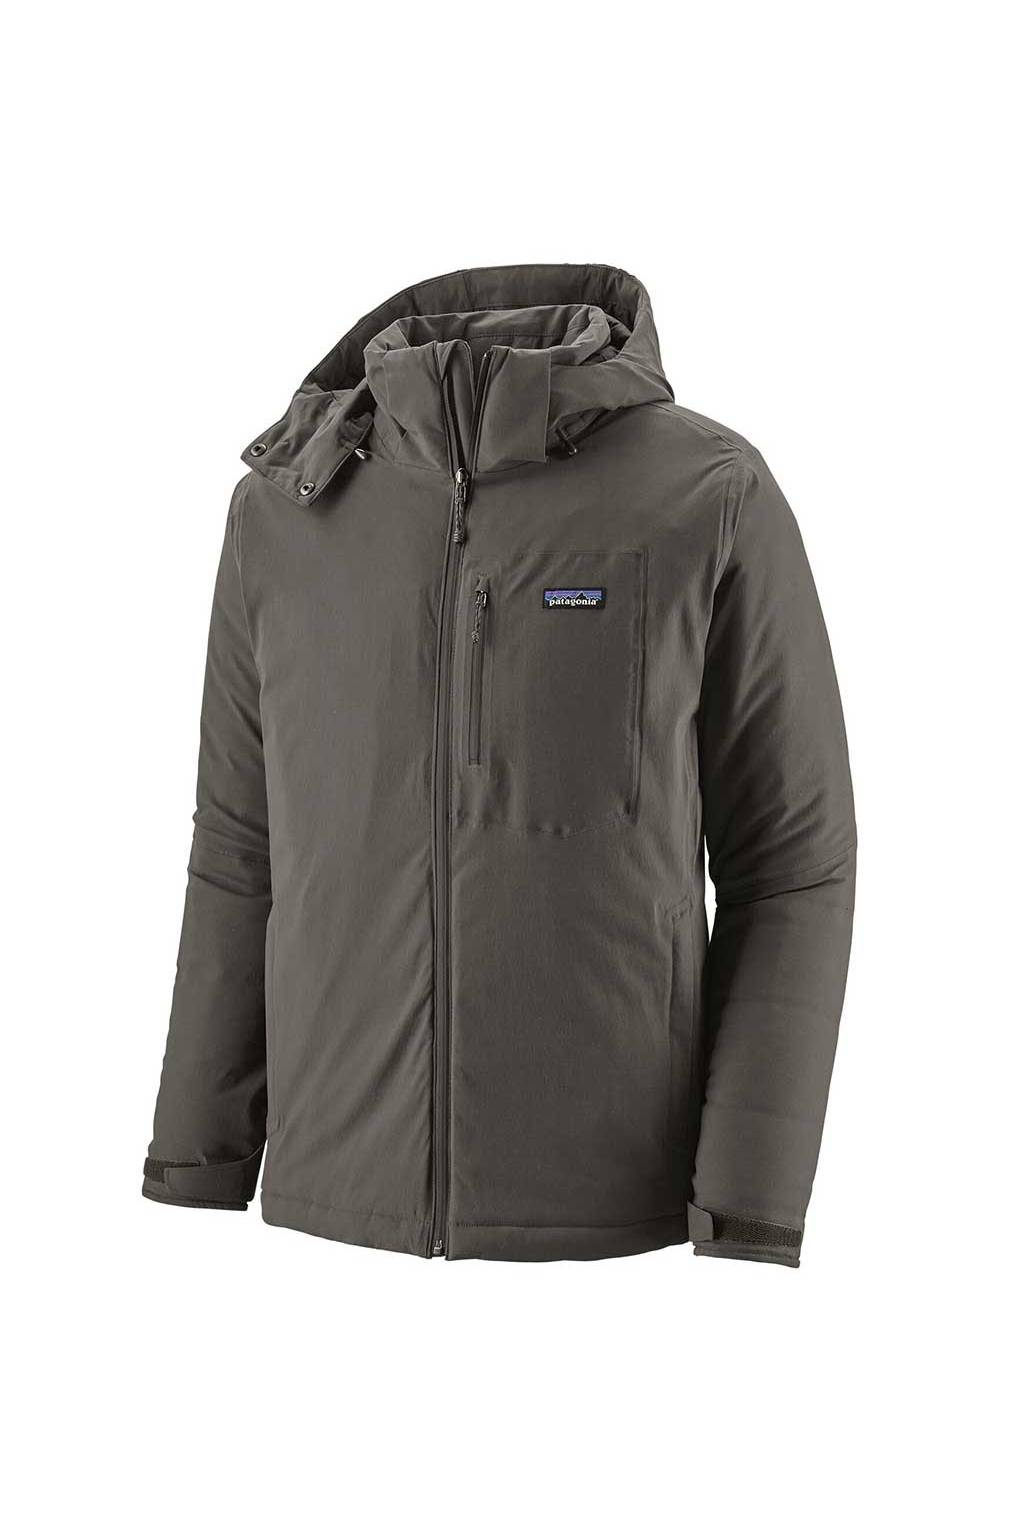 Men's Patagonia Insulated 27630 Jacket